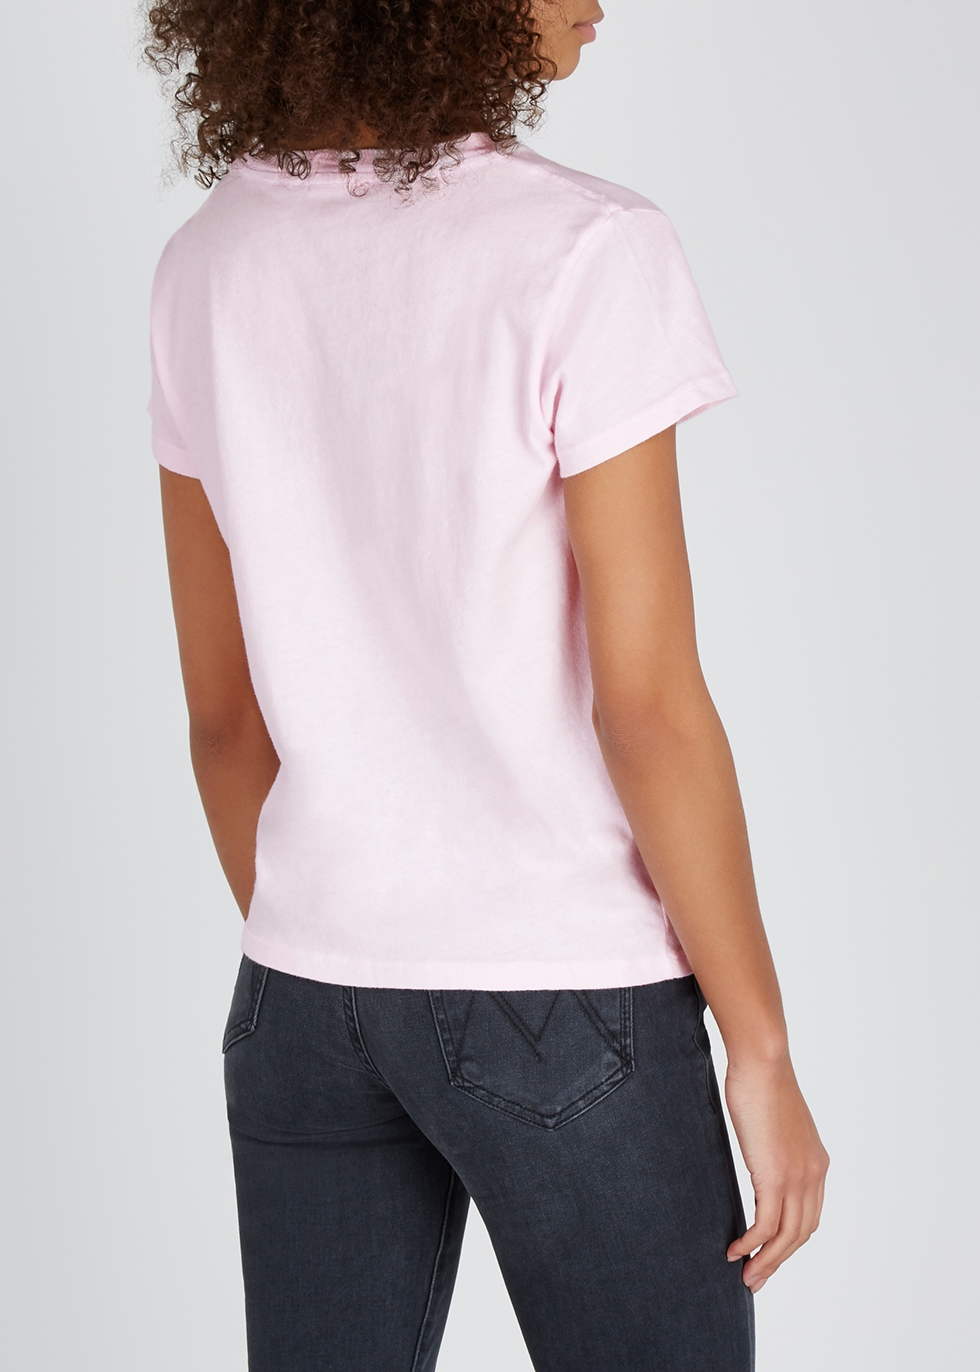 Pink printed cotton T-shirt - Mother